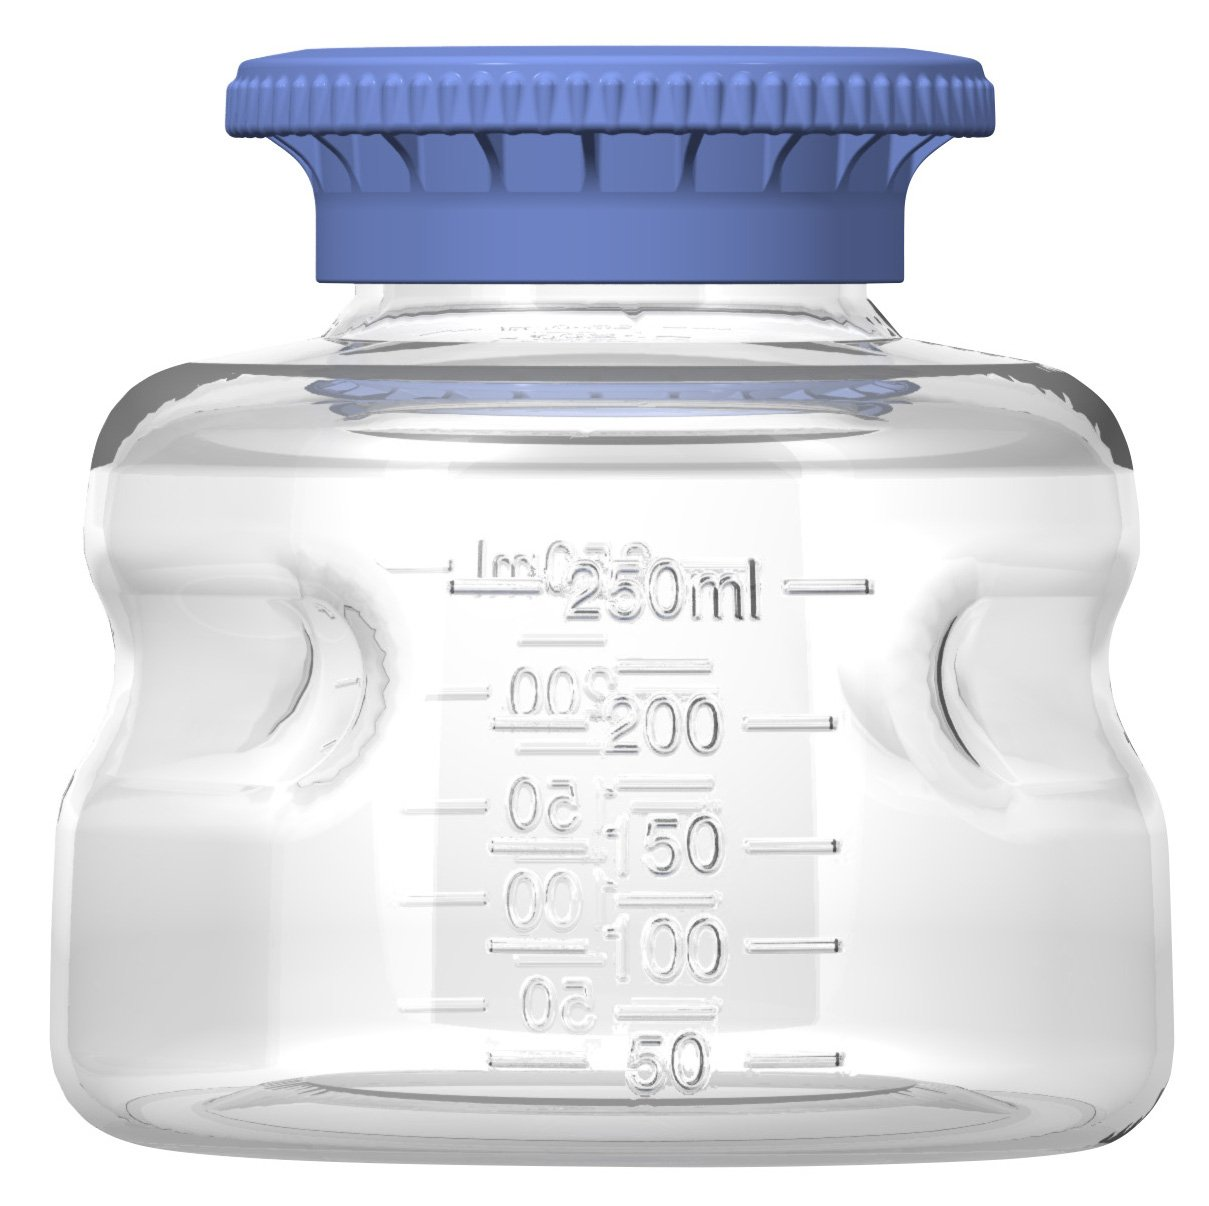 Autofil Polycarbonate Sterile Disposable Media Bottle with Polypropylene Cap, 250ml Volume (Pack of 24)